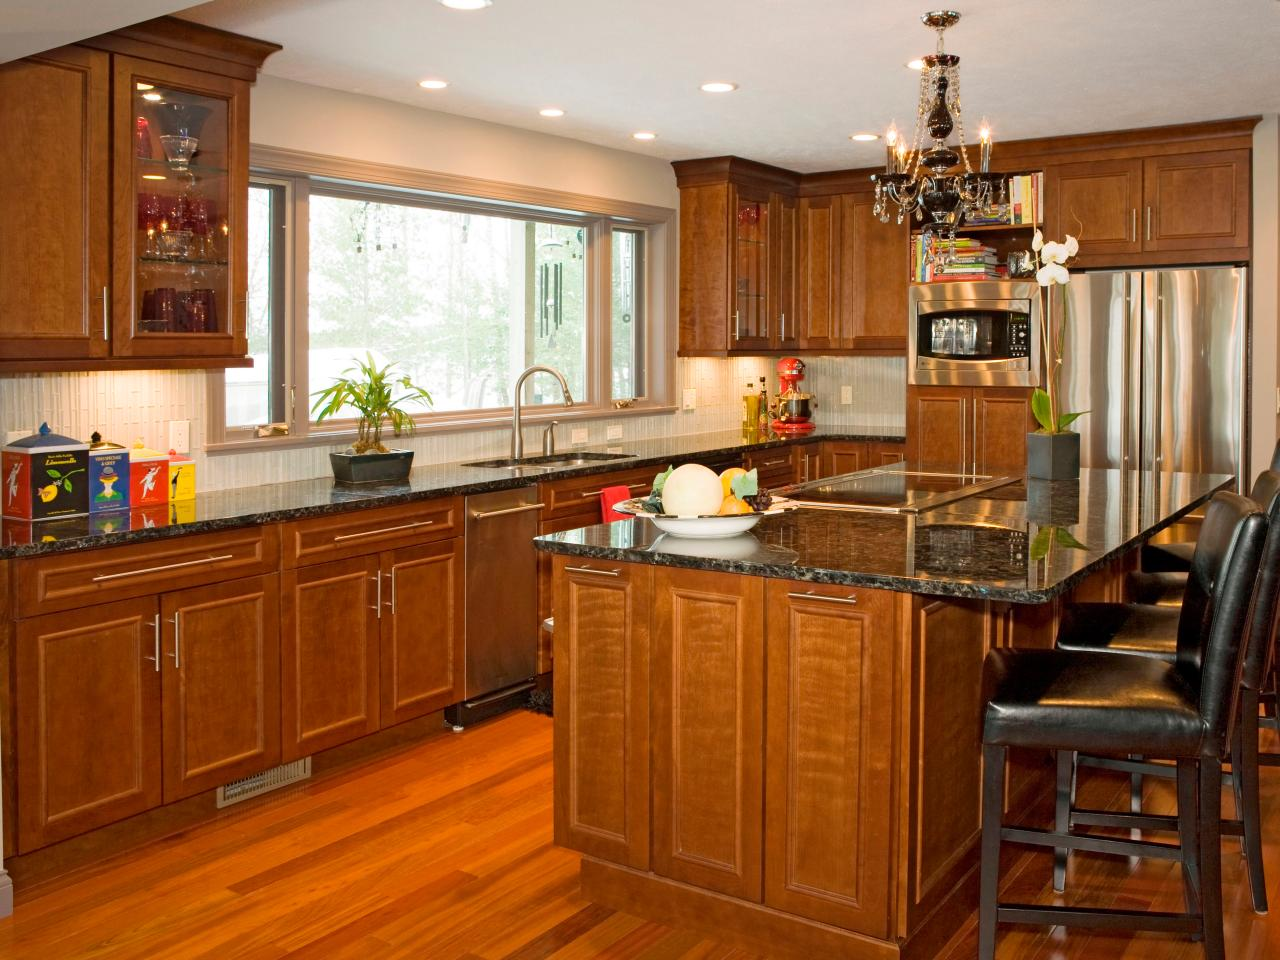 Kitchen cabinet styles and trends kitchen designs choose kitchen layouts remodeling - Kitchen styles and designs ...